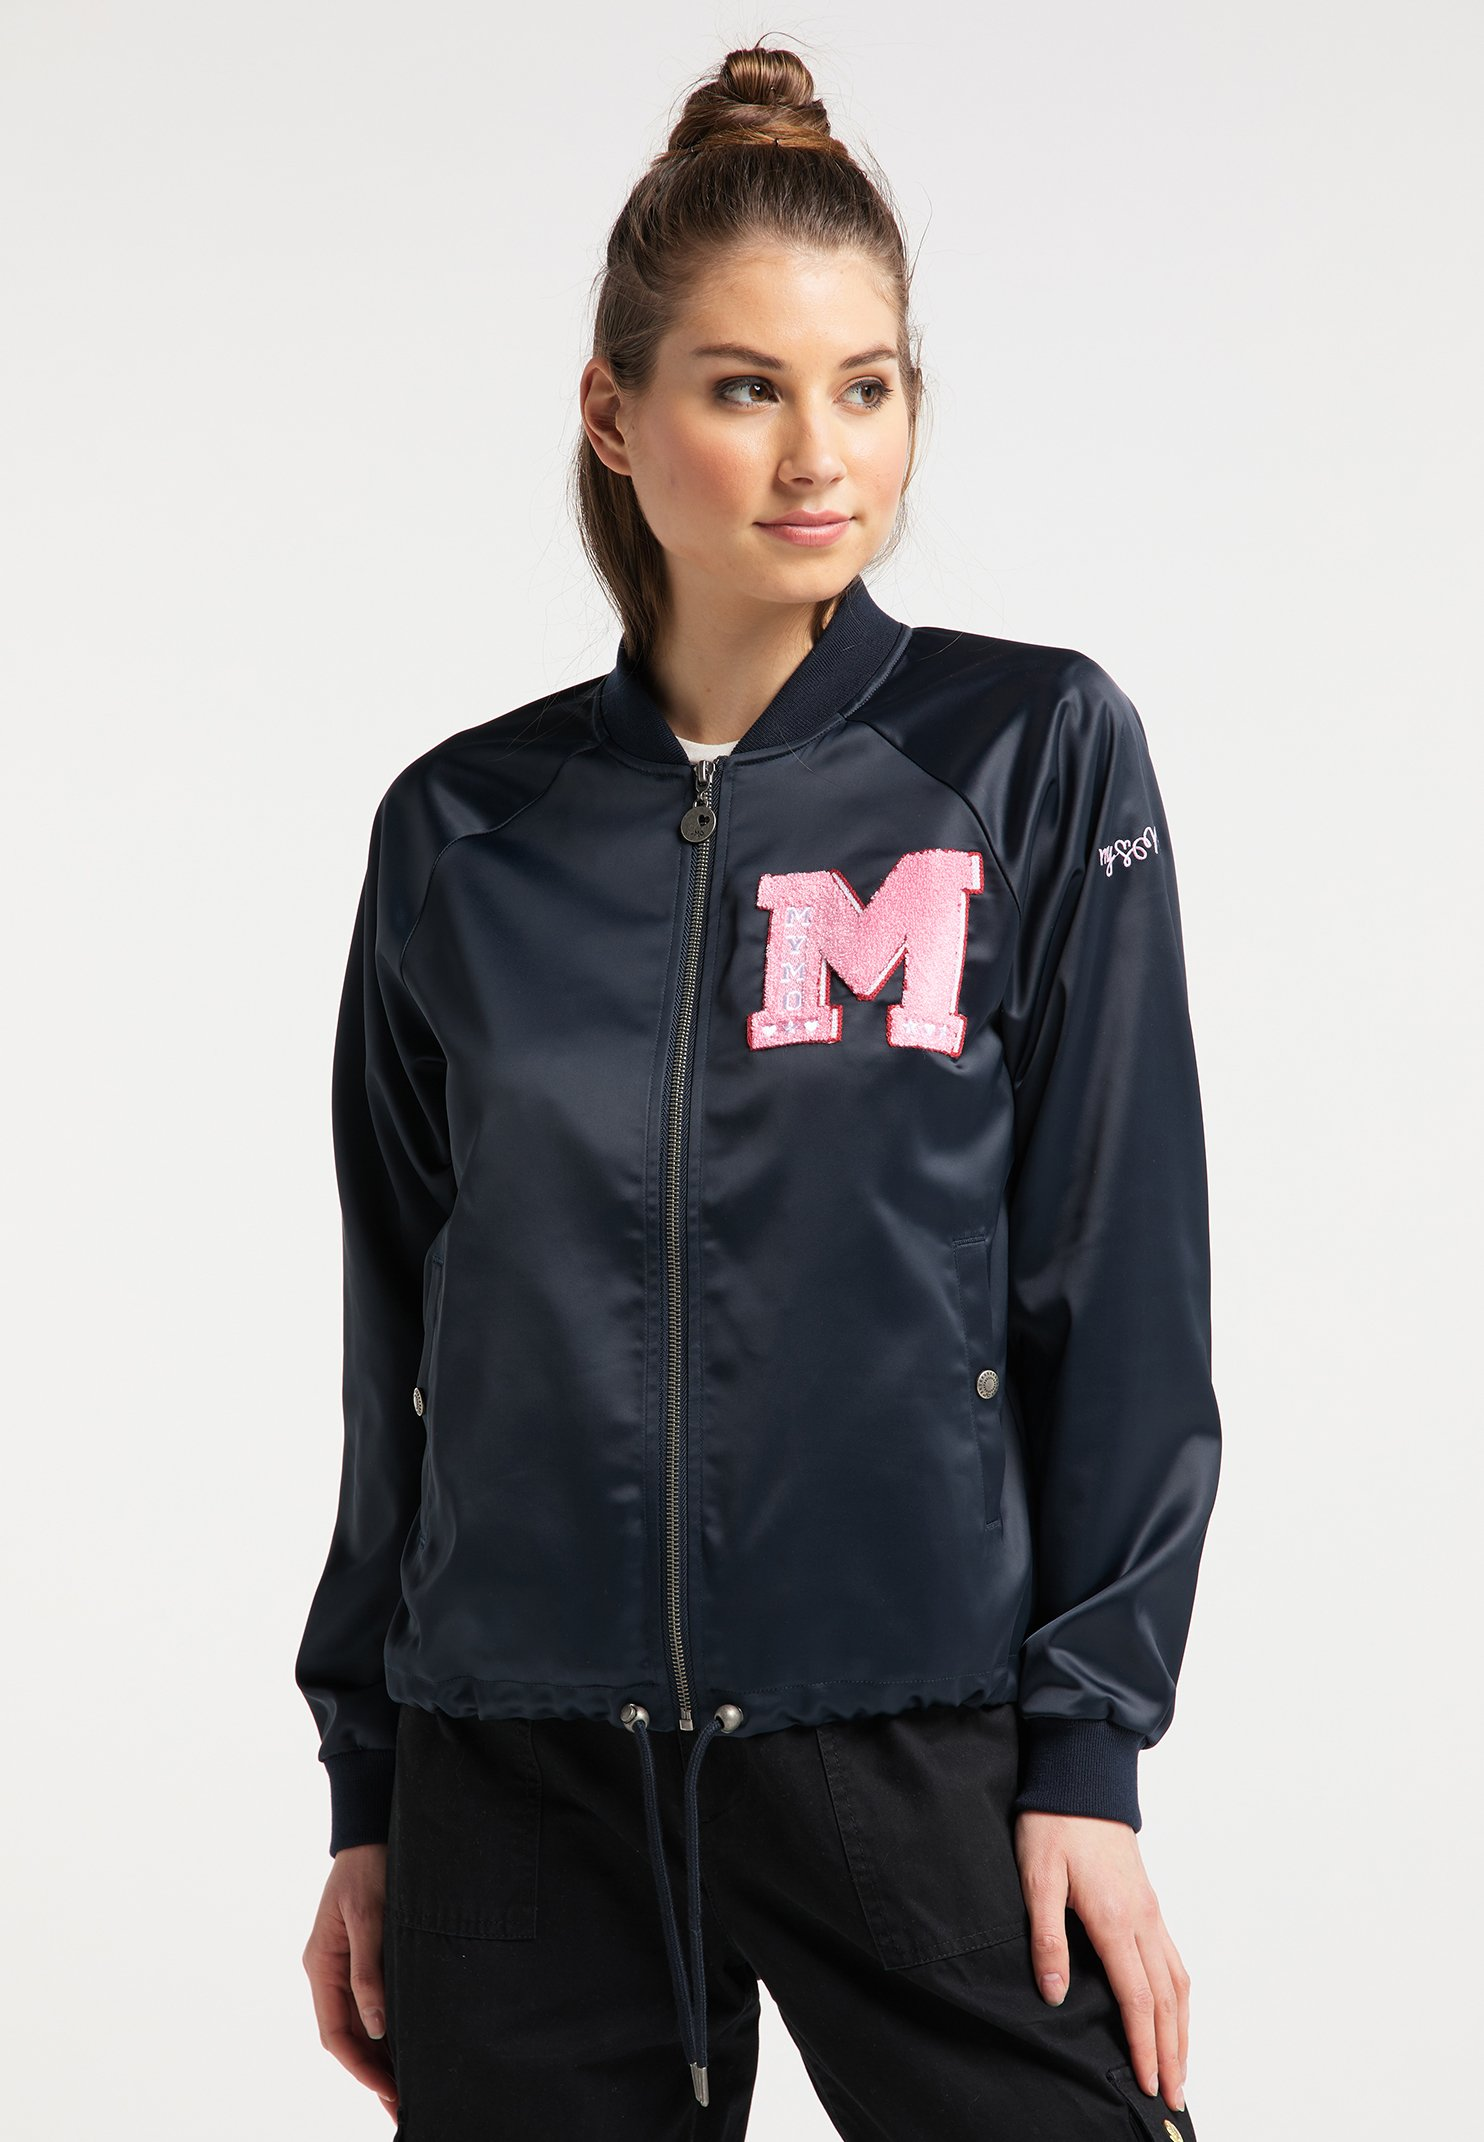 Best Place Women's Clothing myMo Bomber Jacket marine ofL4DsPrM